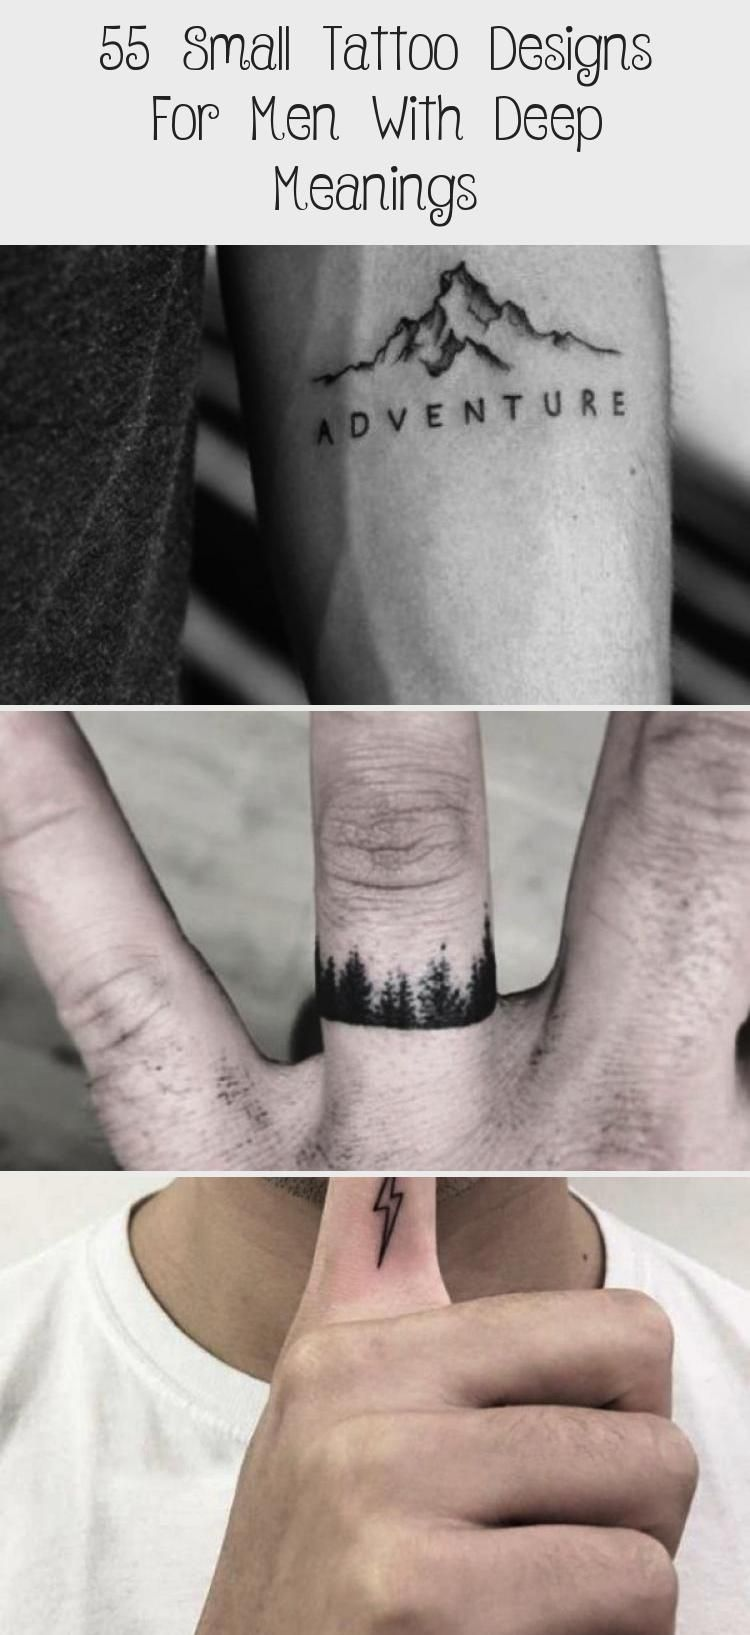 Small Tattoo Designs For Men With Deep Meanings Tattooideenoberarm Tattooideenschwestern Tattooideen Small Tattoos Tattoo Designs Men Small Tattoos For Guys